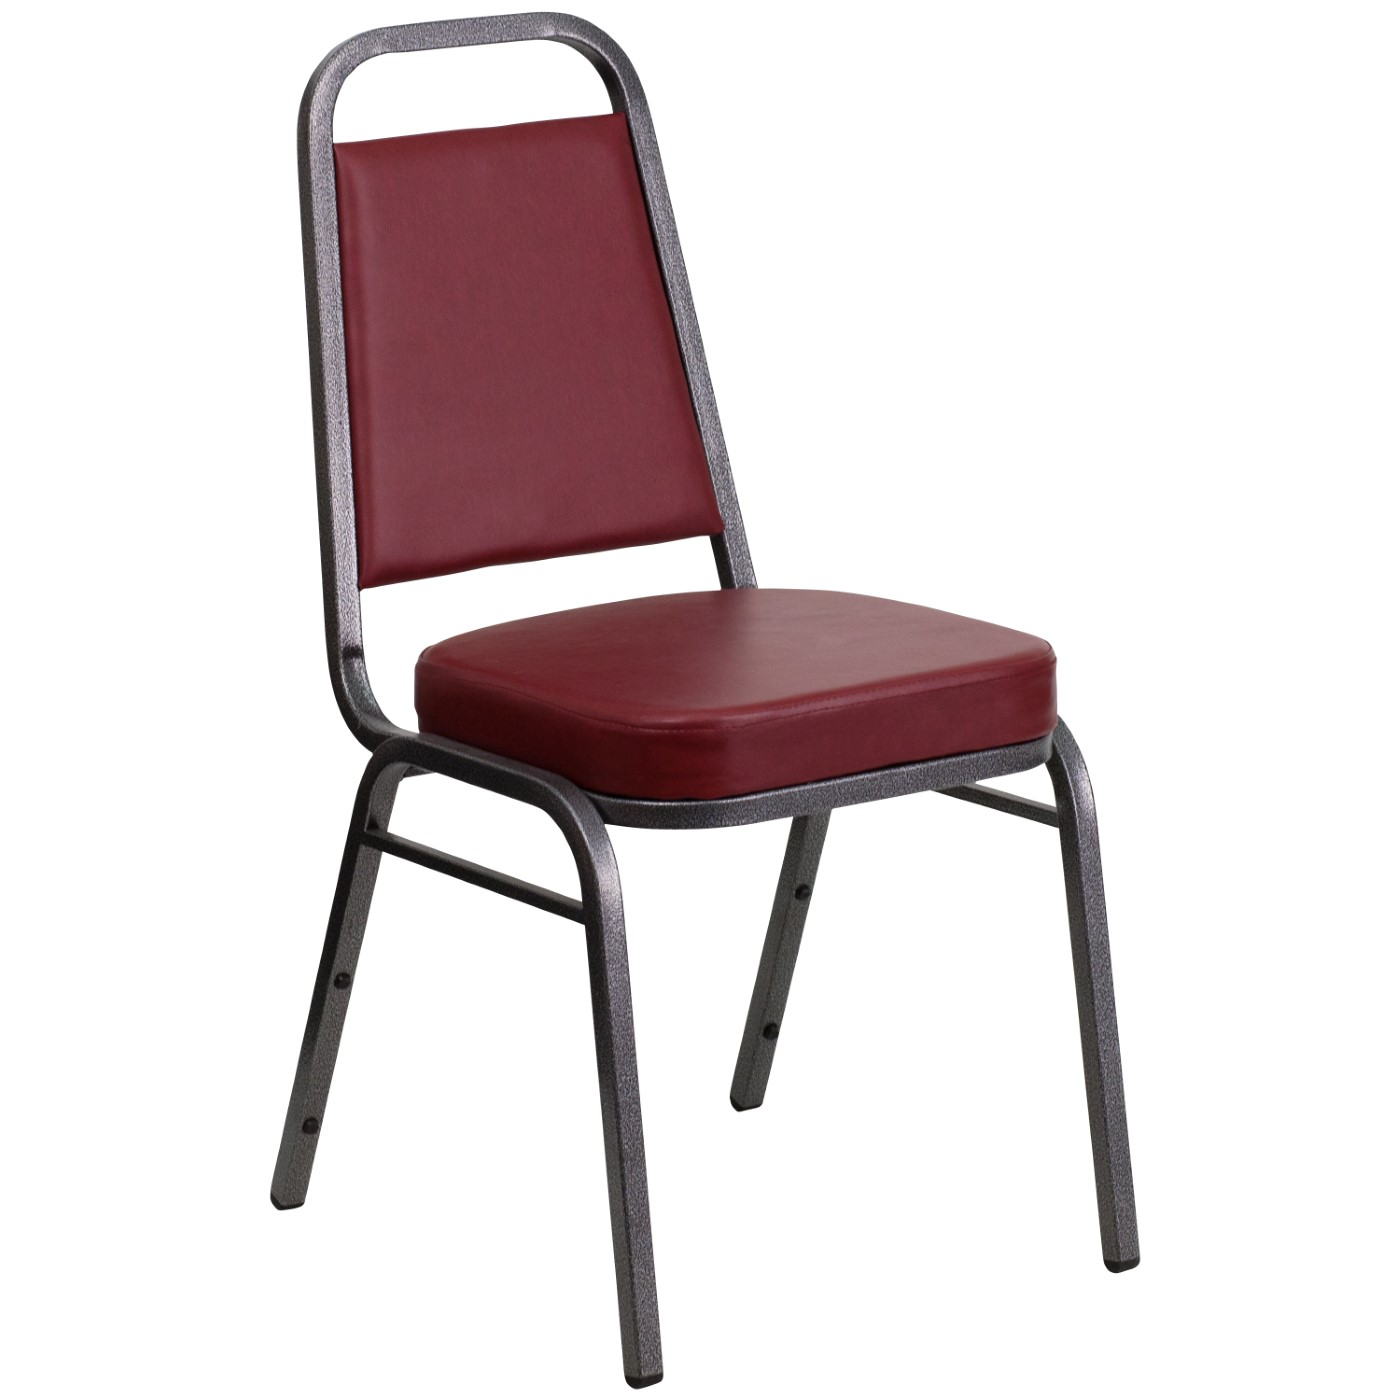 TOUGH ENOUGH Series Trapezoidal Back Stacking Banquet Chair in Burgundy Vinyl - Silver Vein Frame